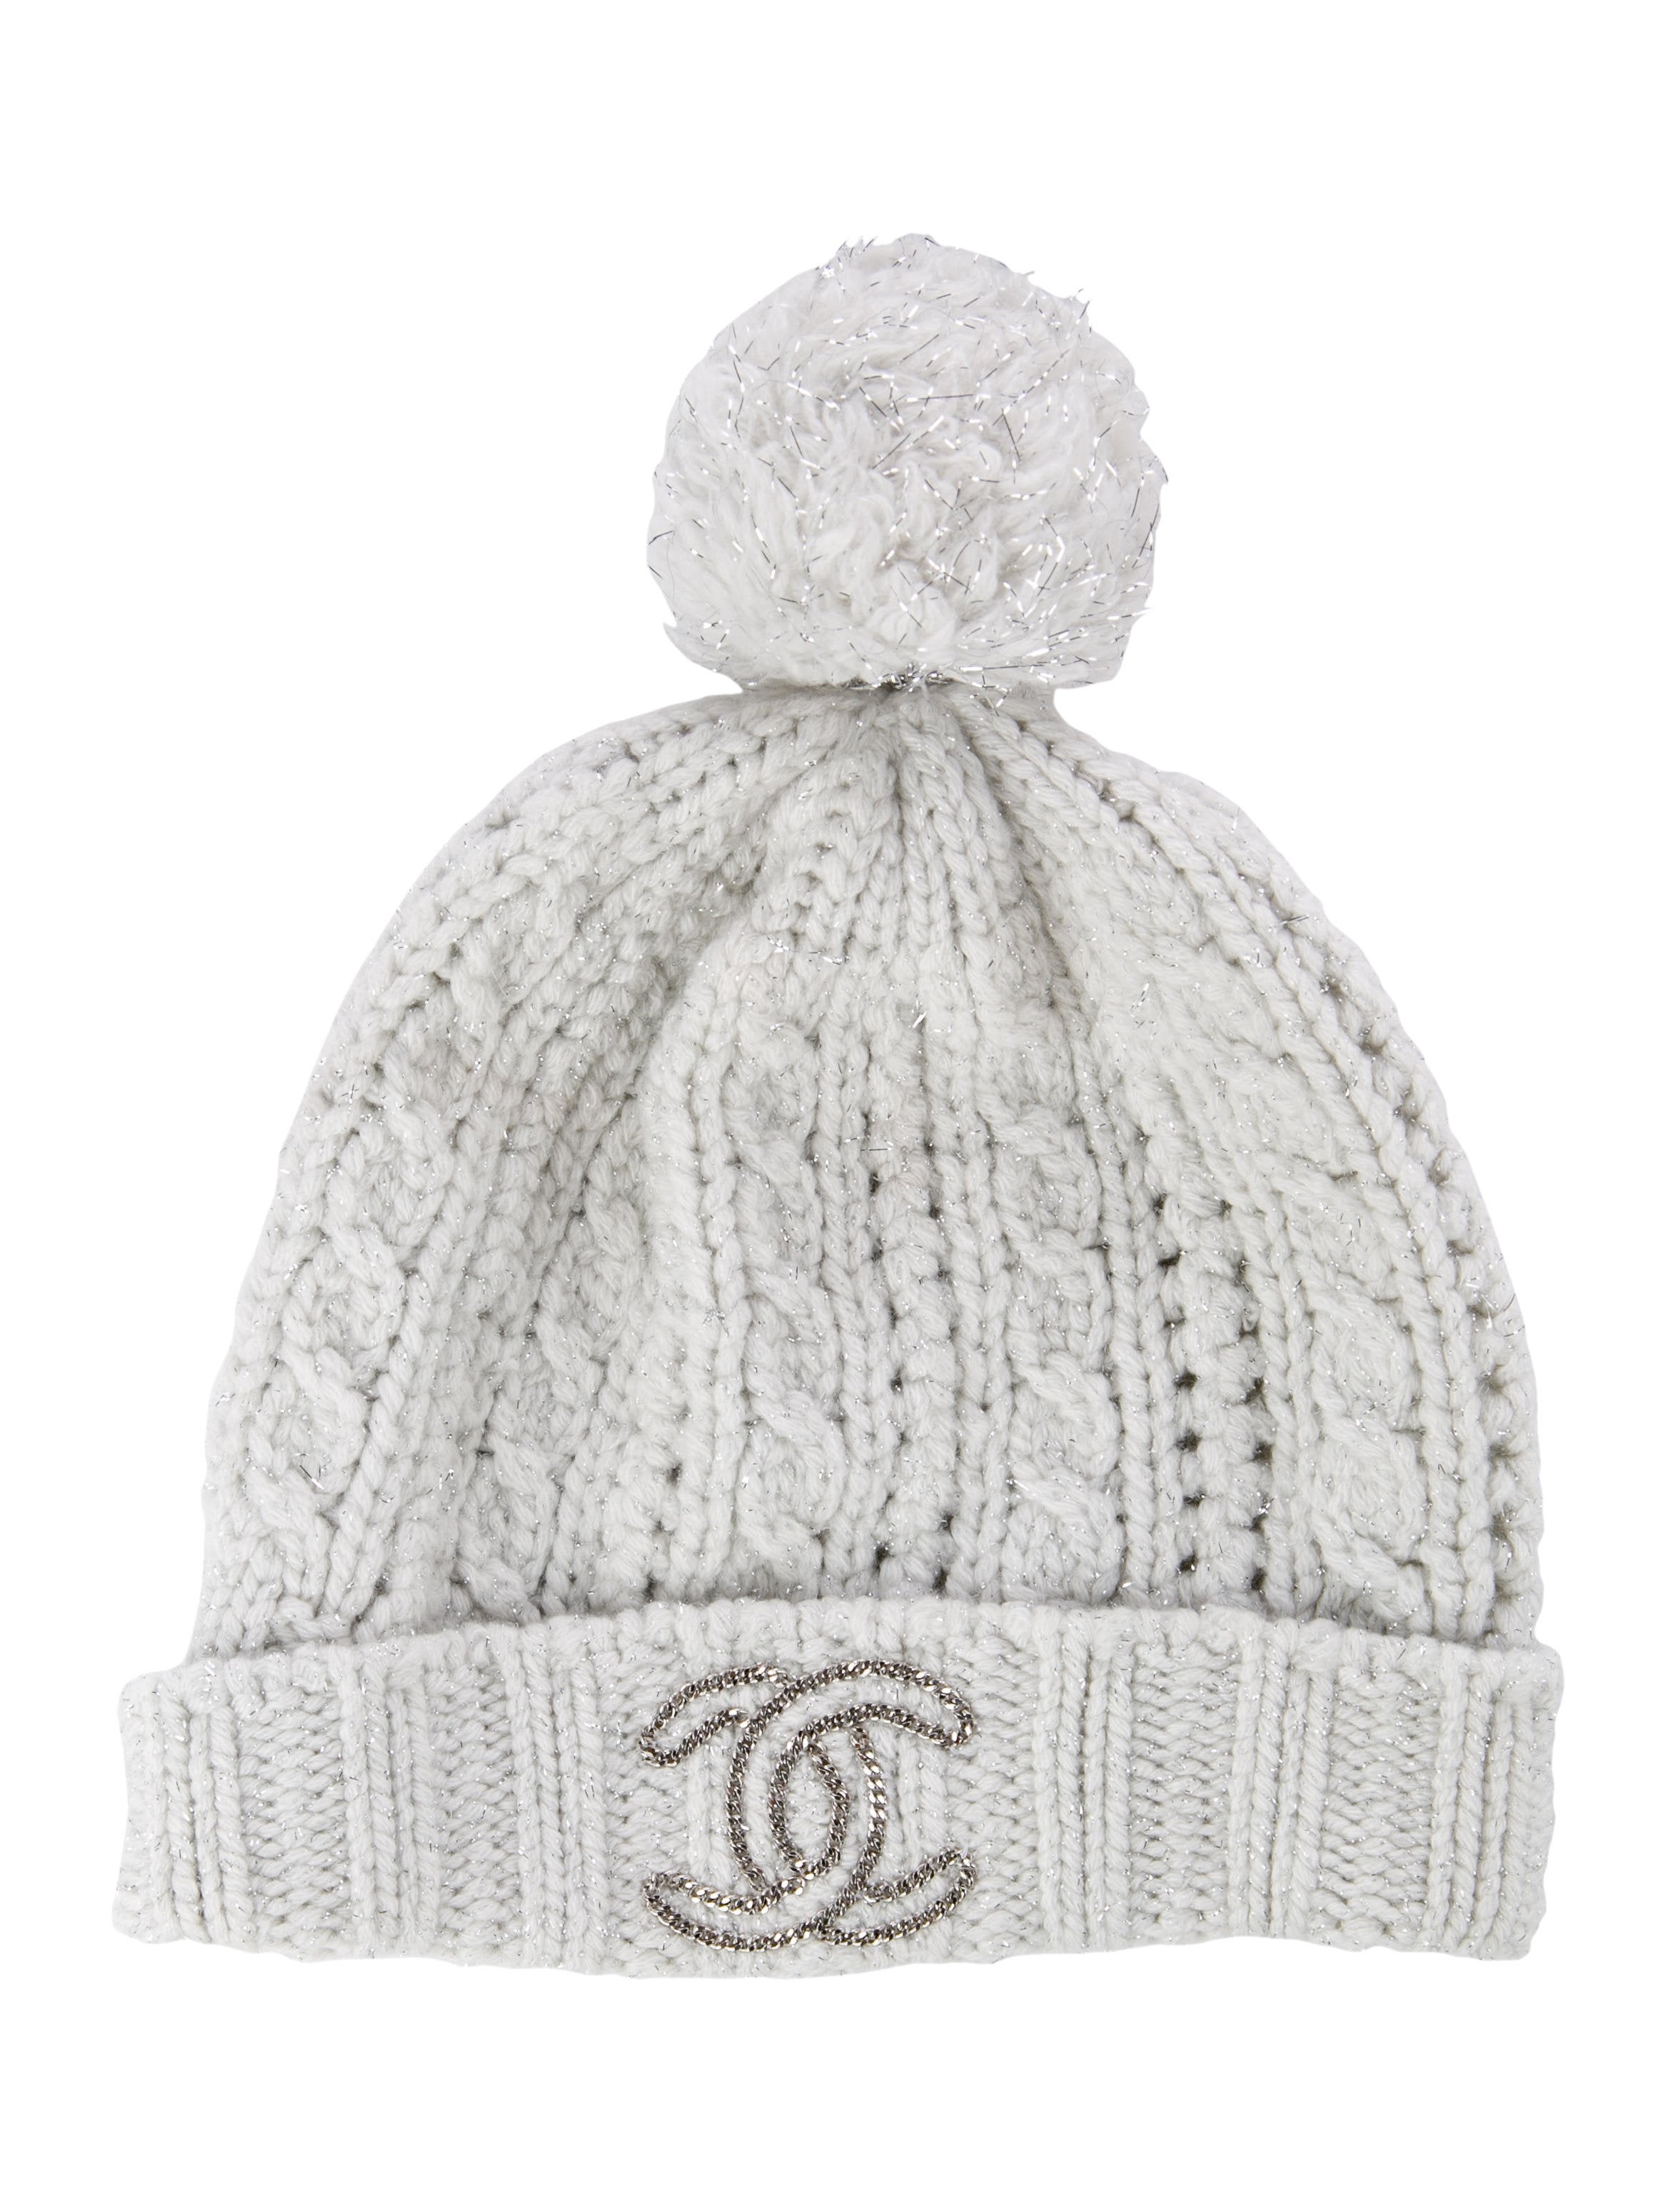 Chanel Embellished Knit Hat - Accessories - CHA226520  06506e8fa7a